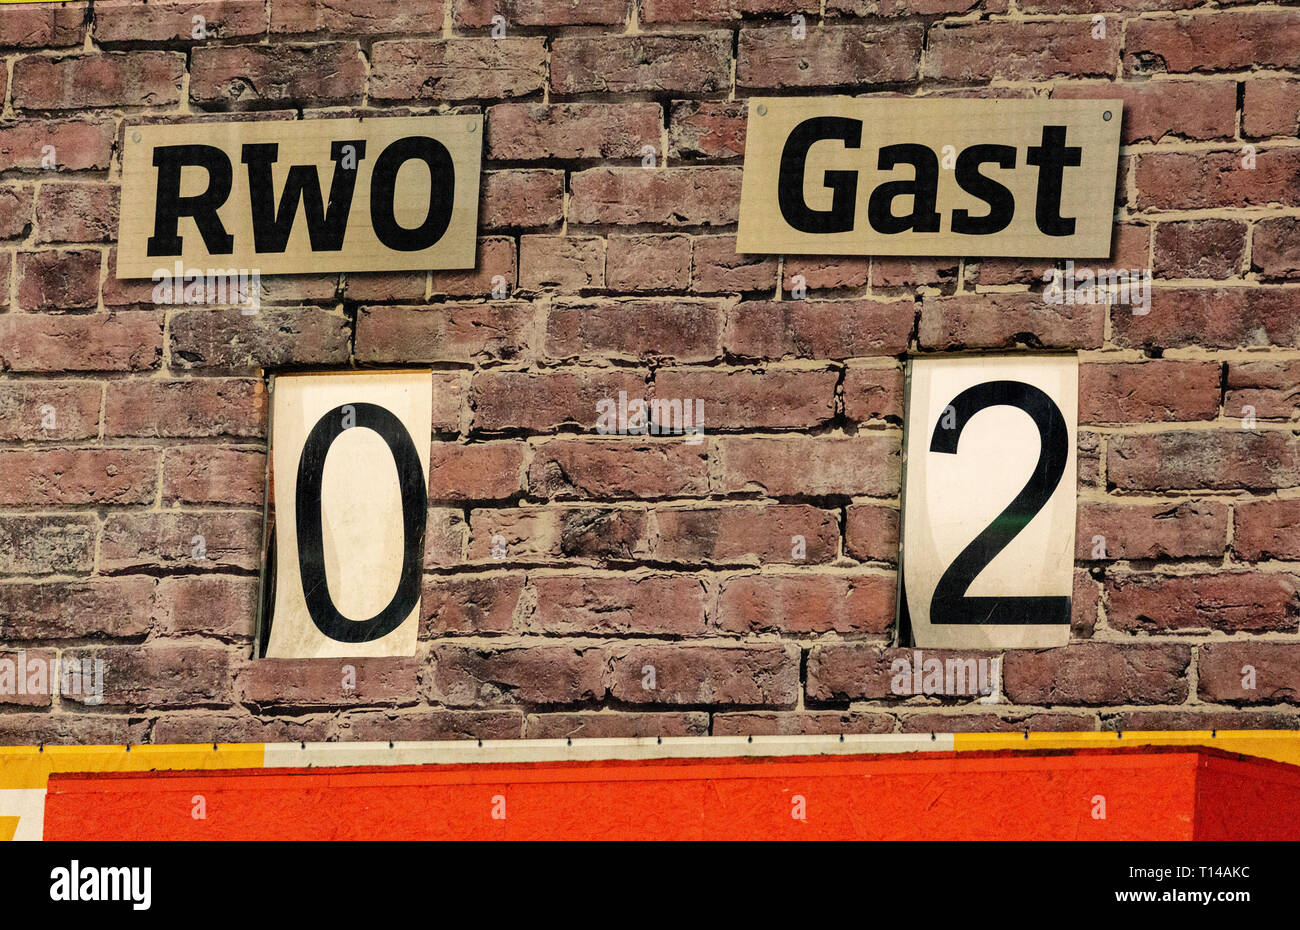 sports, football, Regional League West, 2018/2019, Rot Weiss Oberhausen vs Fortuna Duesseldorf U23 3-3, Stadium Niederrhein in Oberhausen, scoreboard shows the result after 7 minutes, Fortuna Duesseldorf is up 0-2 Stock Photo